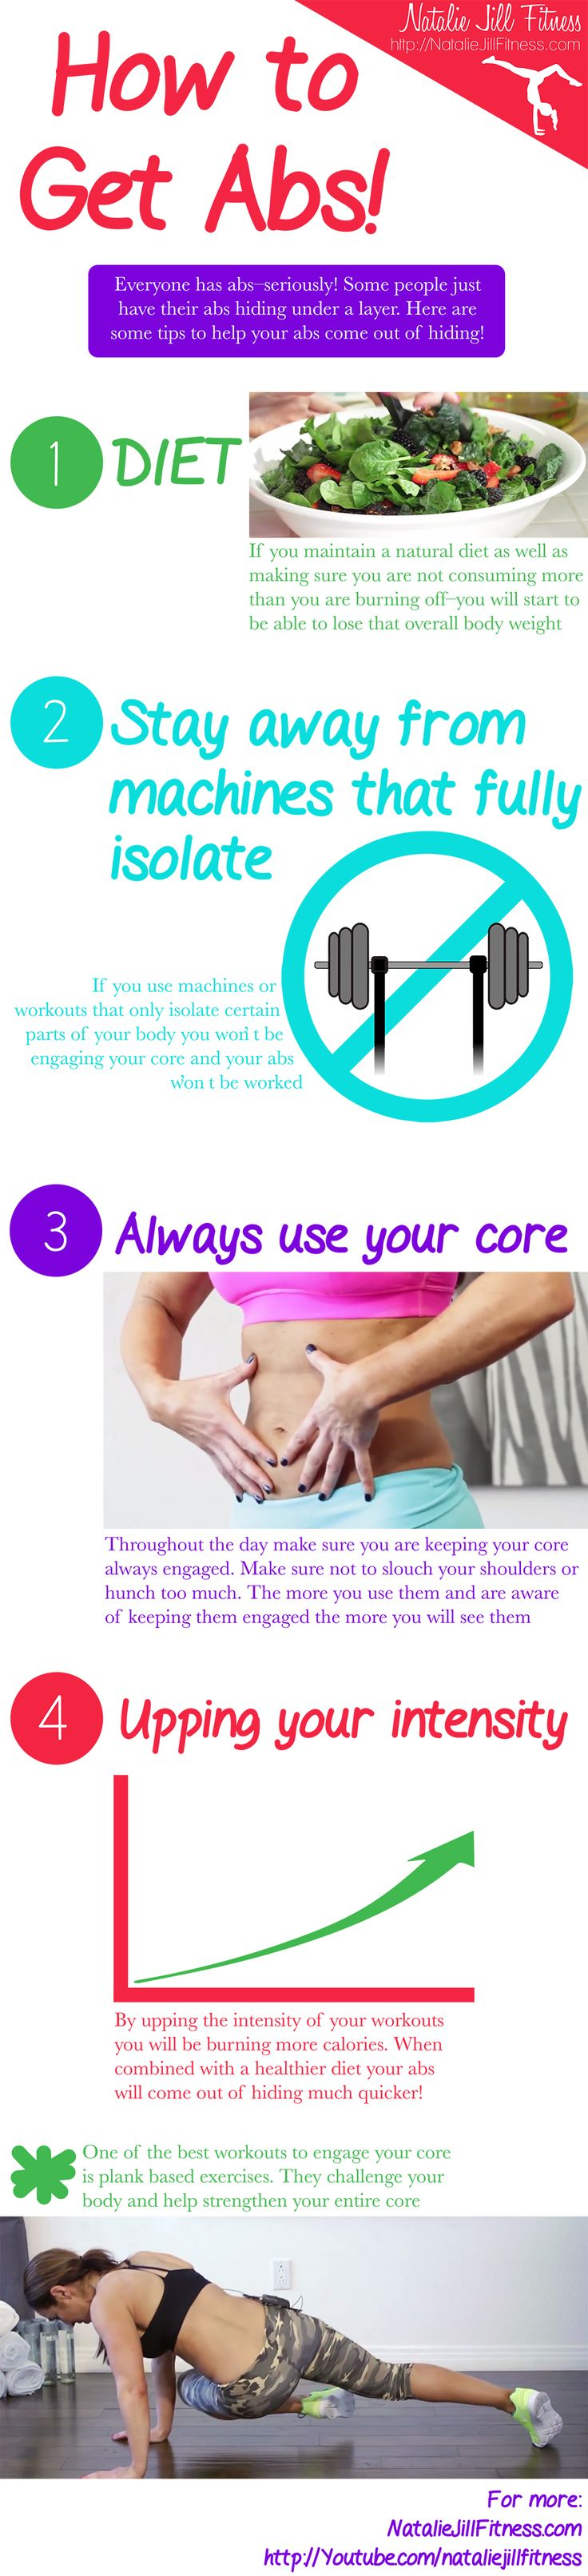 How to get ABS!!! Click on the image below for the FULL video.